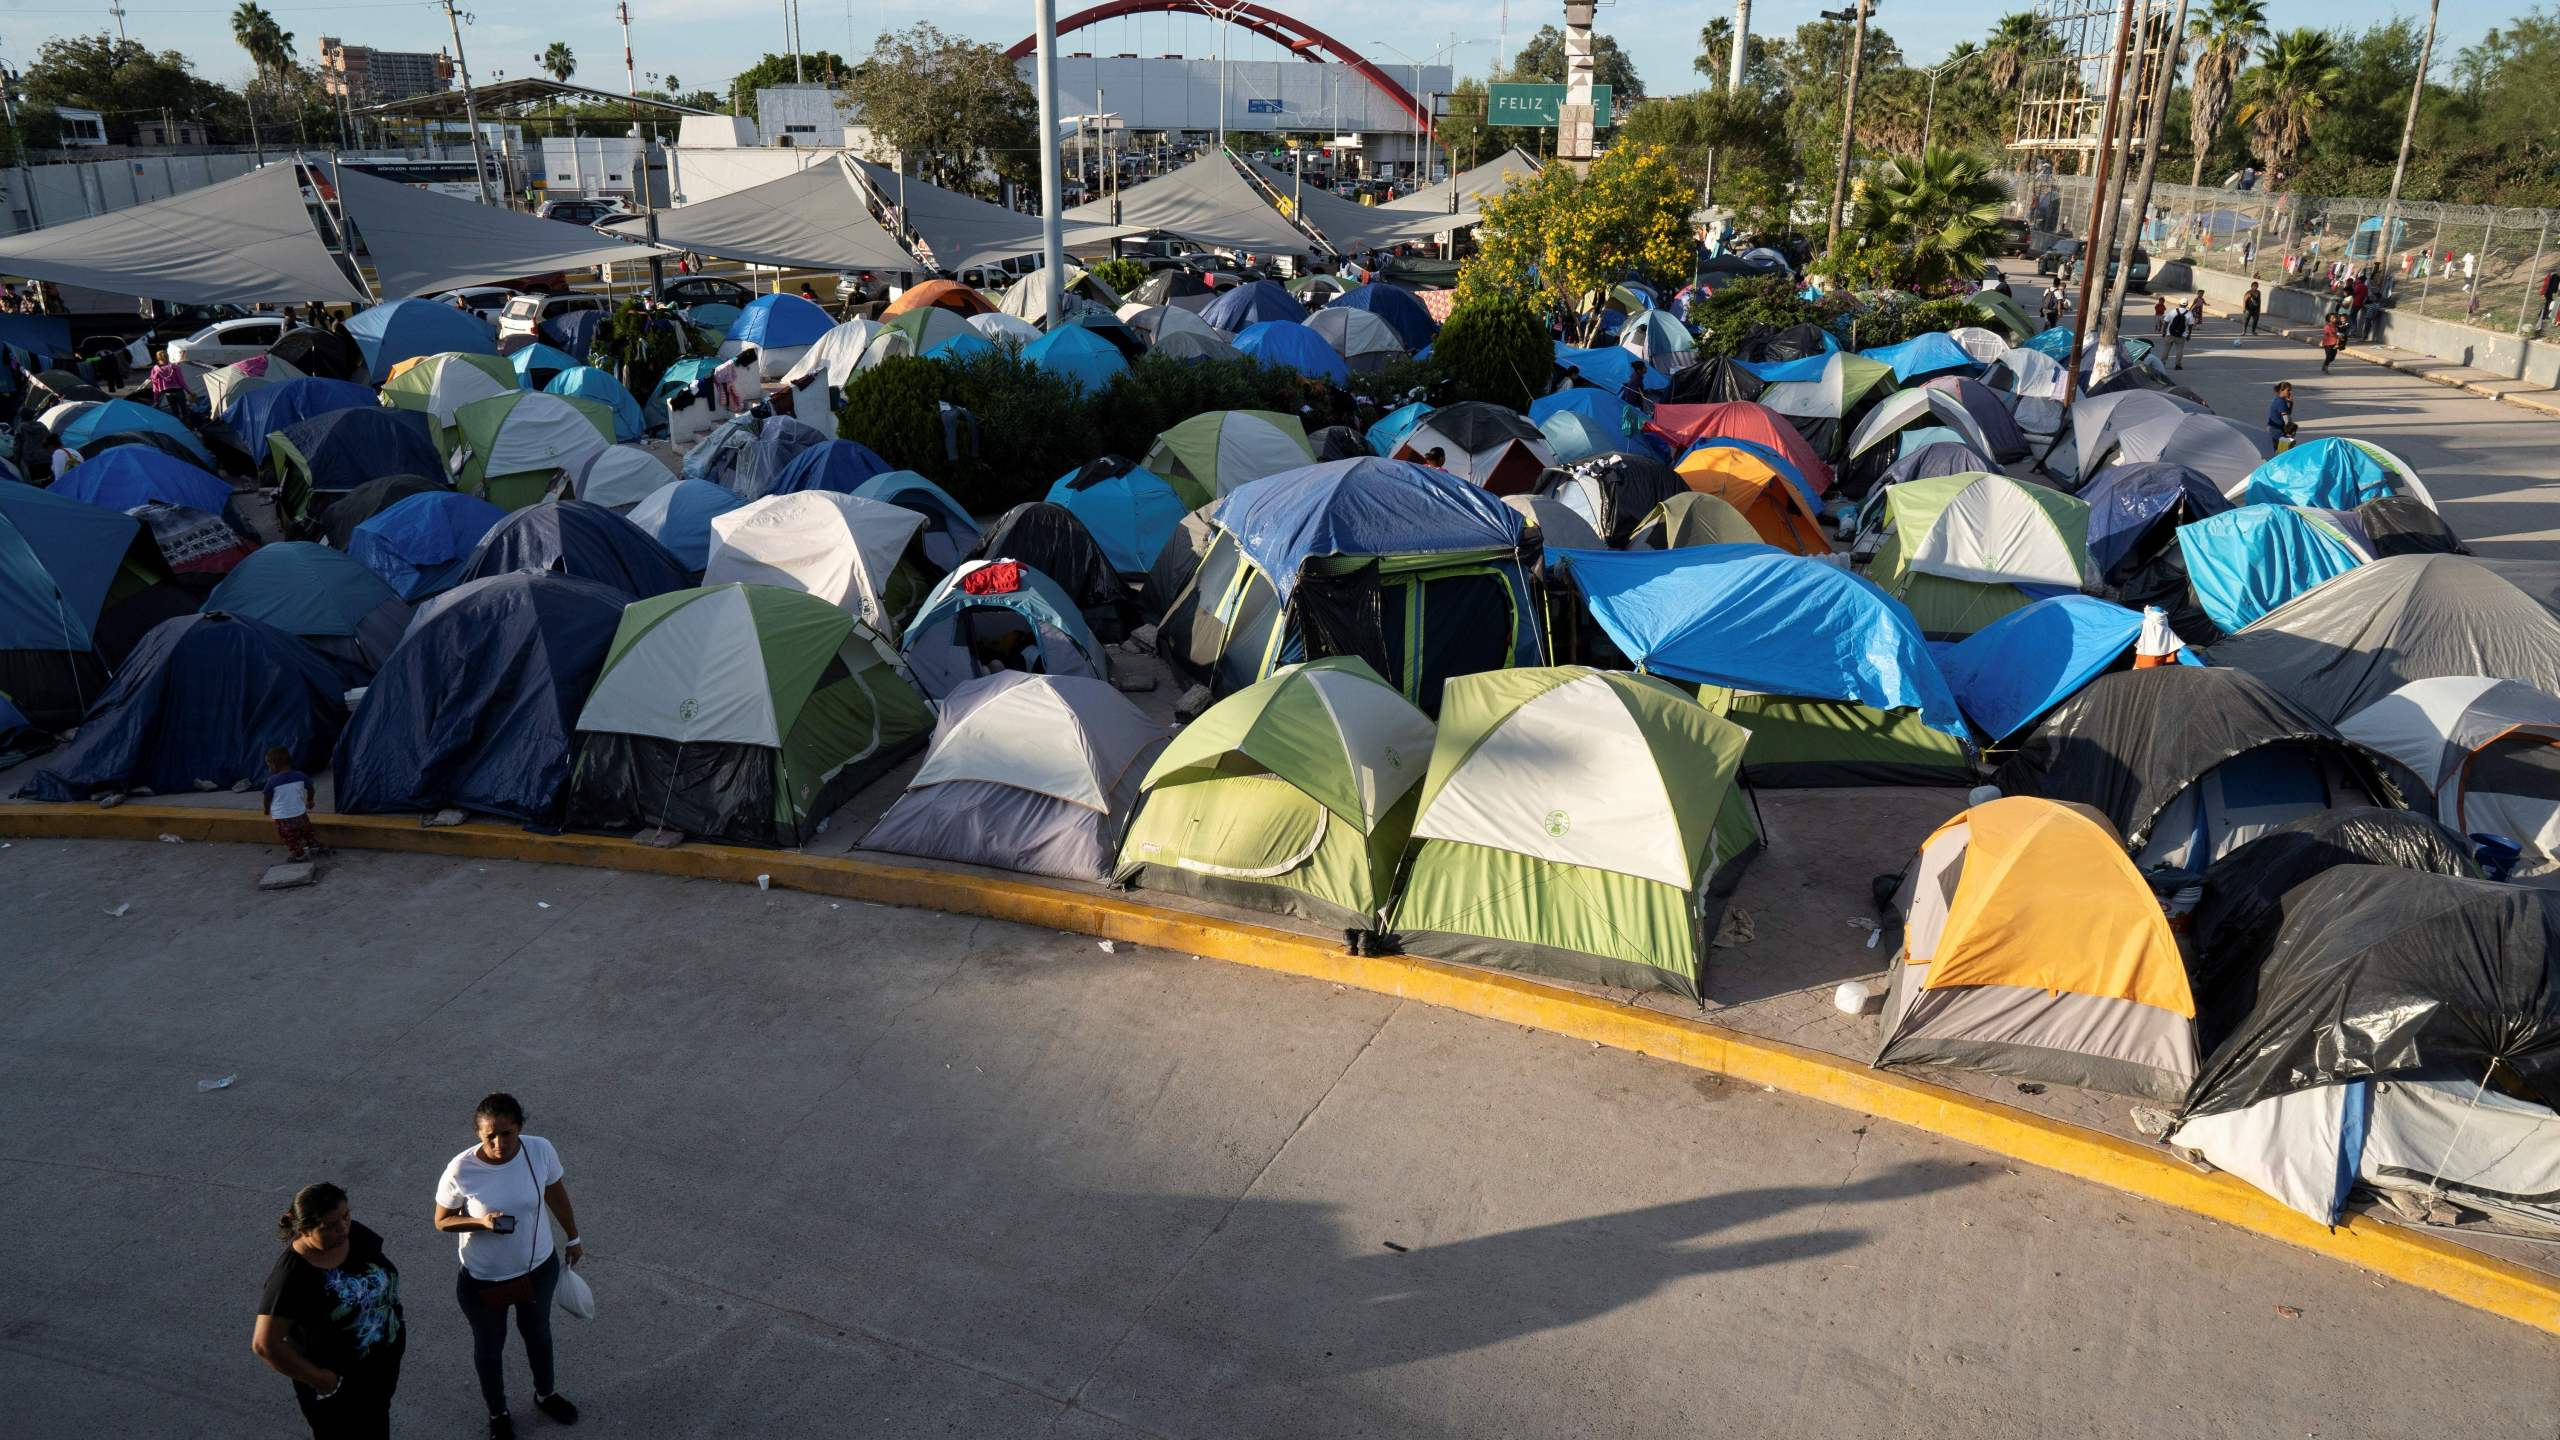 A migrants' camp on the U.S. border just south of the Rio Grande in Matamoros, Mexico, is seen on Nov. 1, 2019. (Credit: Lexie Harrison-Cripps / AFP / Getty Images)